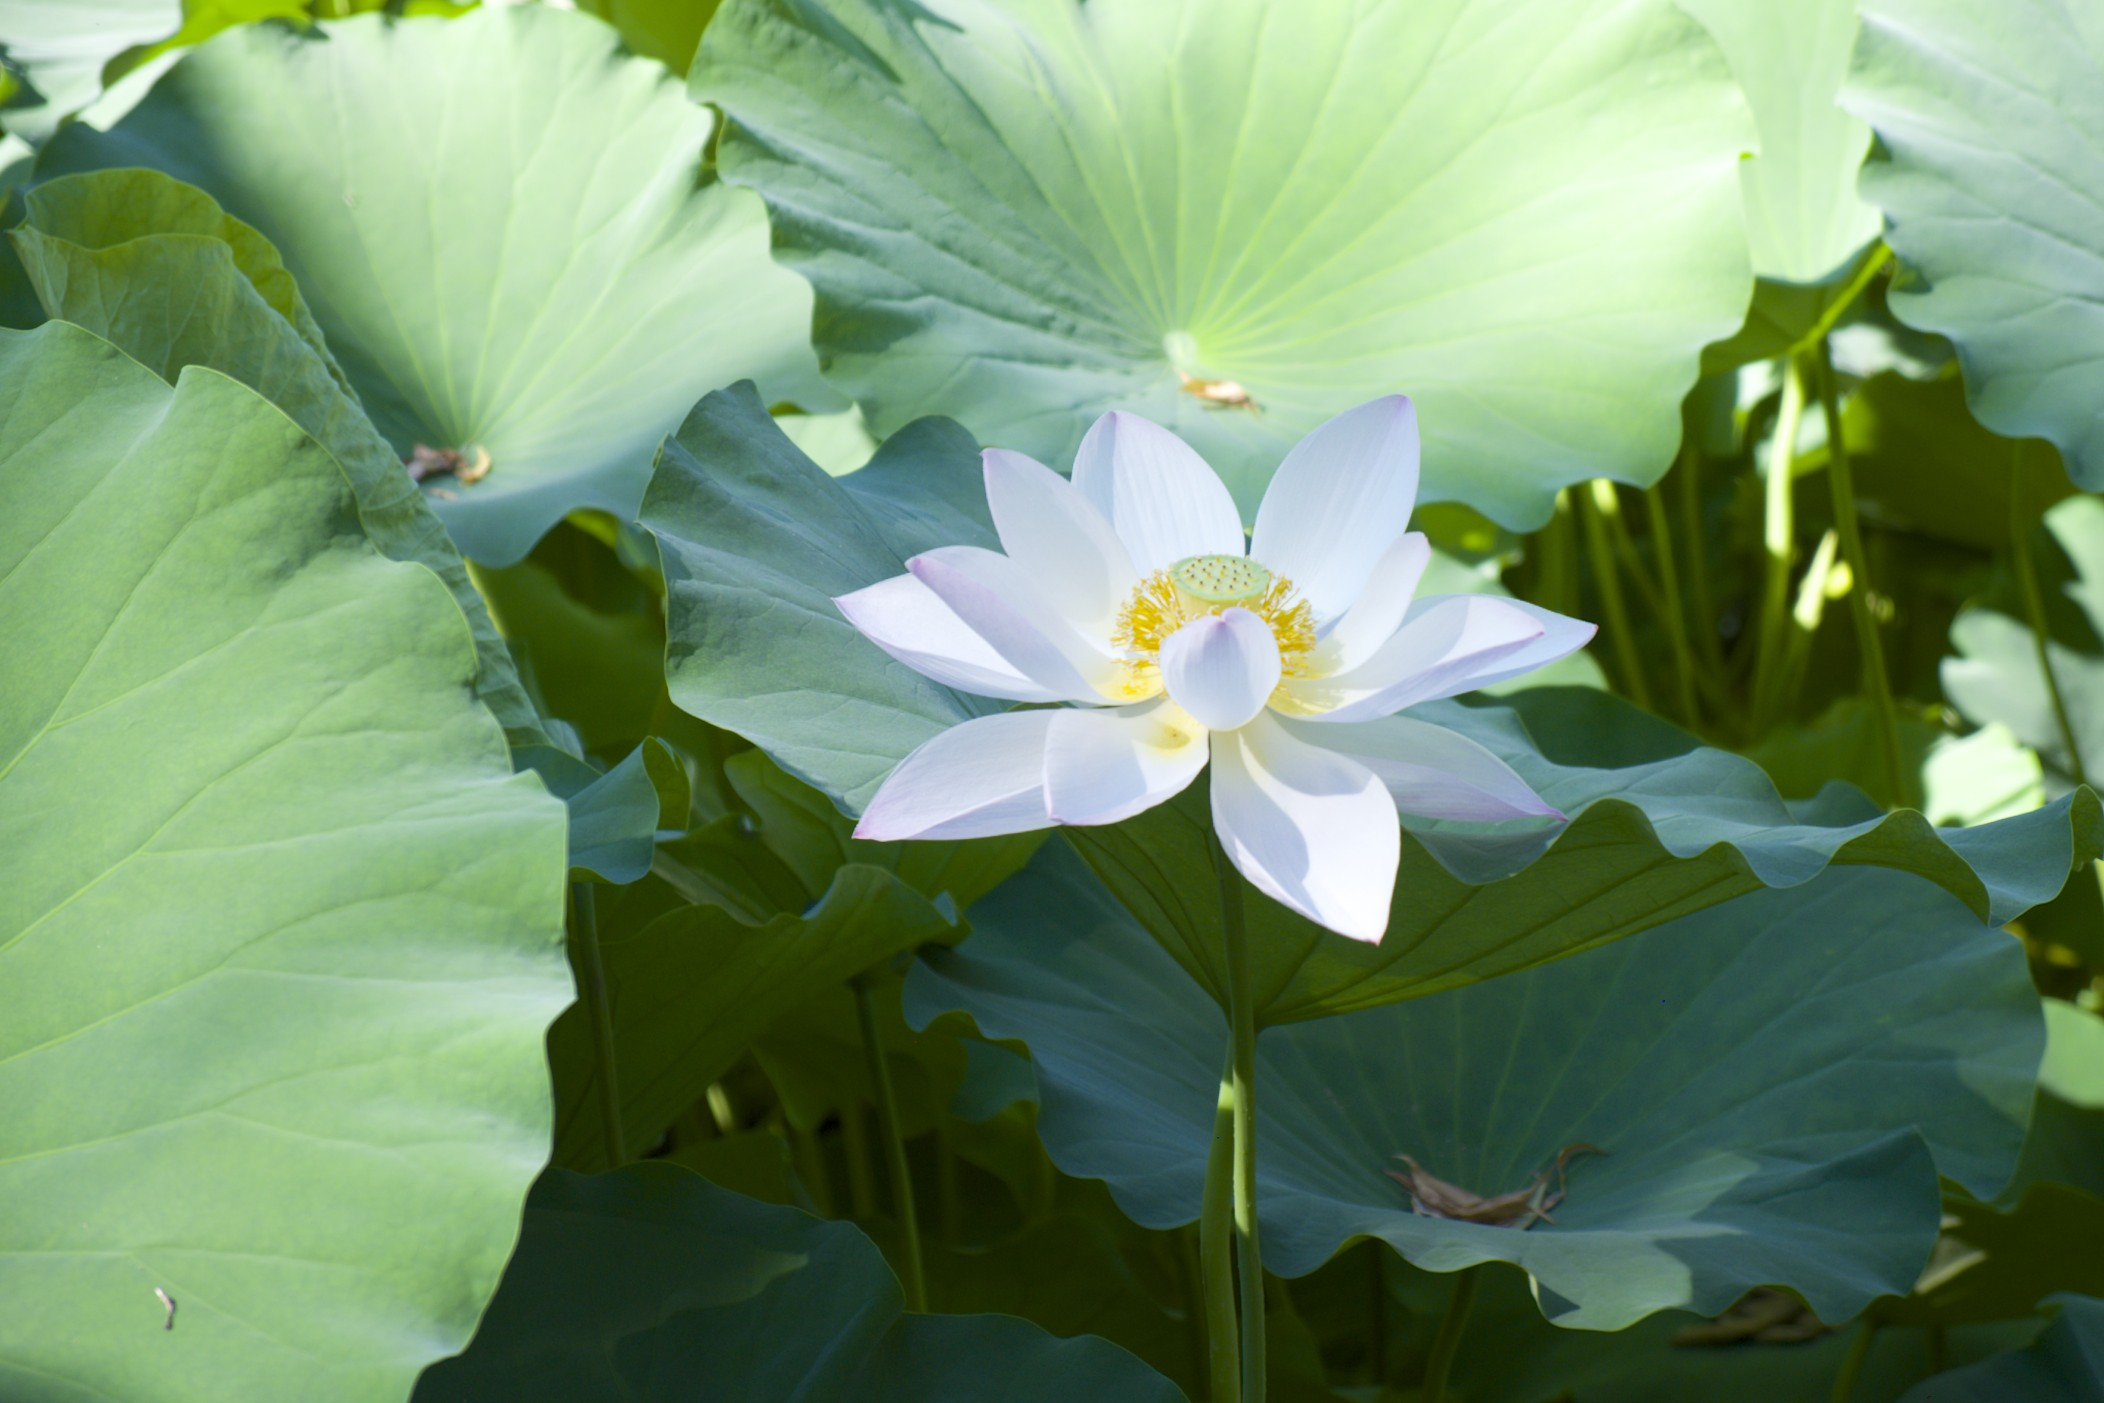 Lotus flower, as seen in Temple of the Sun Park.